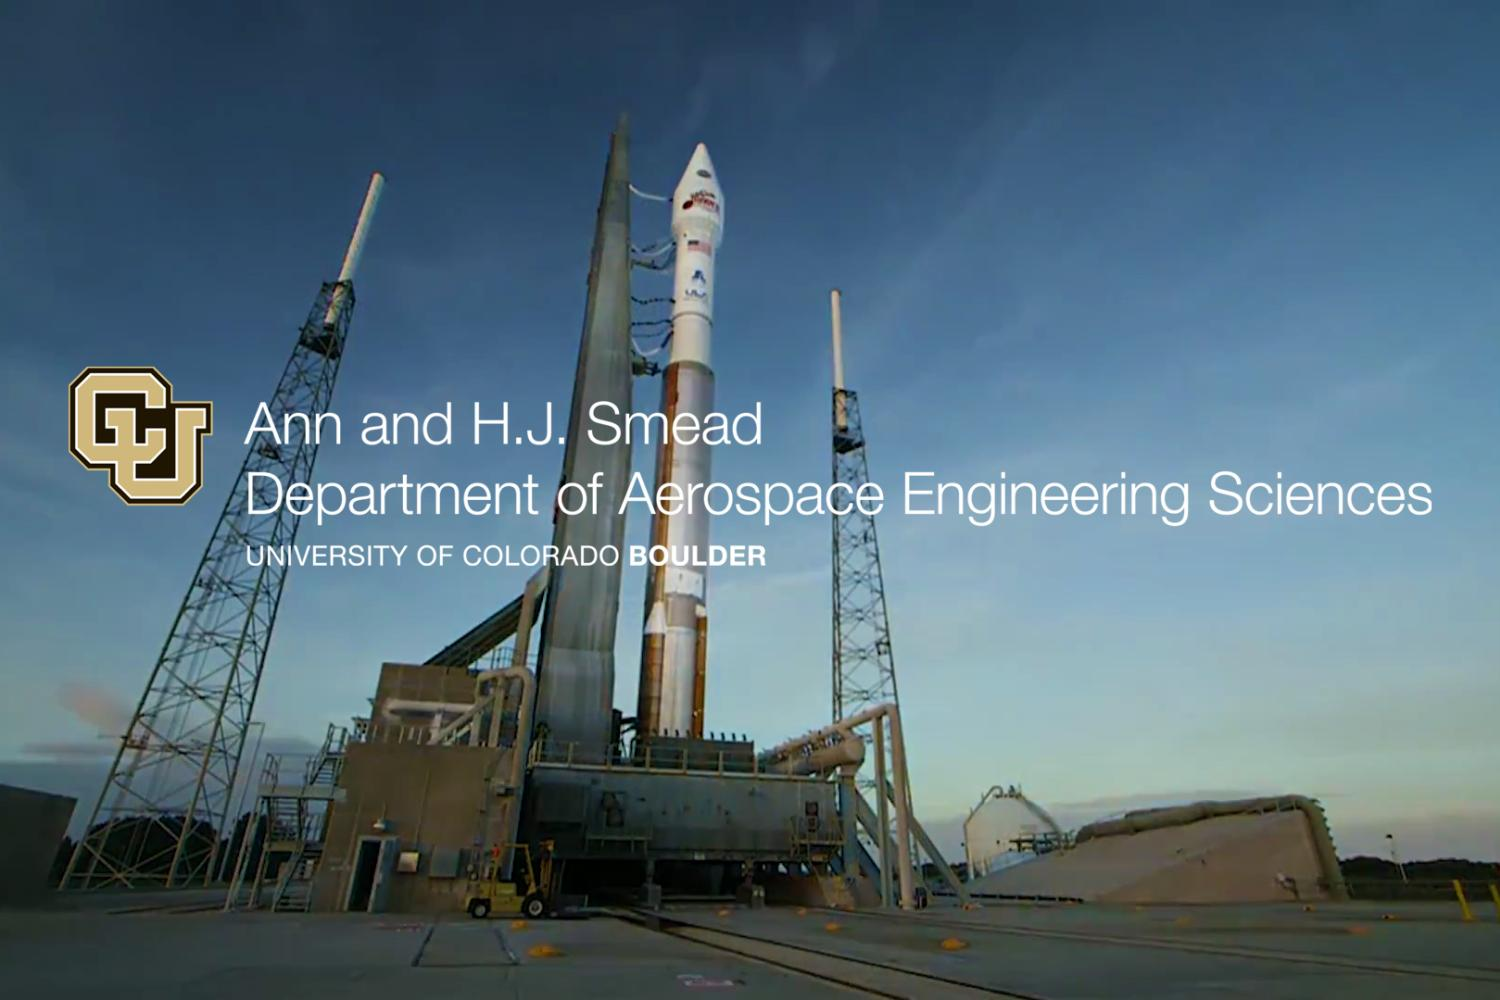 Welcome to the Ann and H.J. Smead Department of Aerospace Engineering Sciences